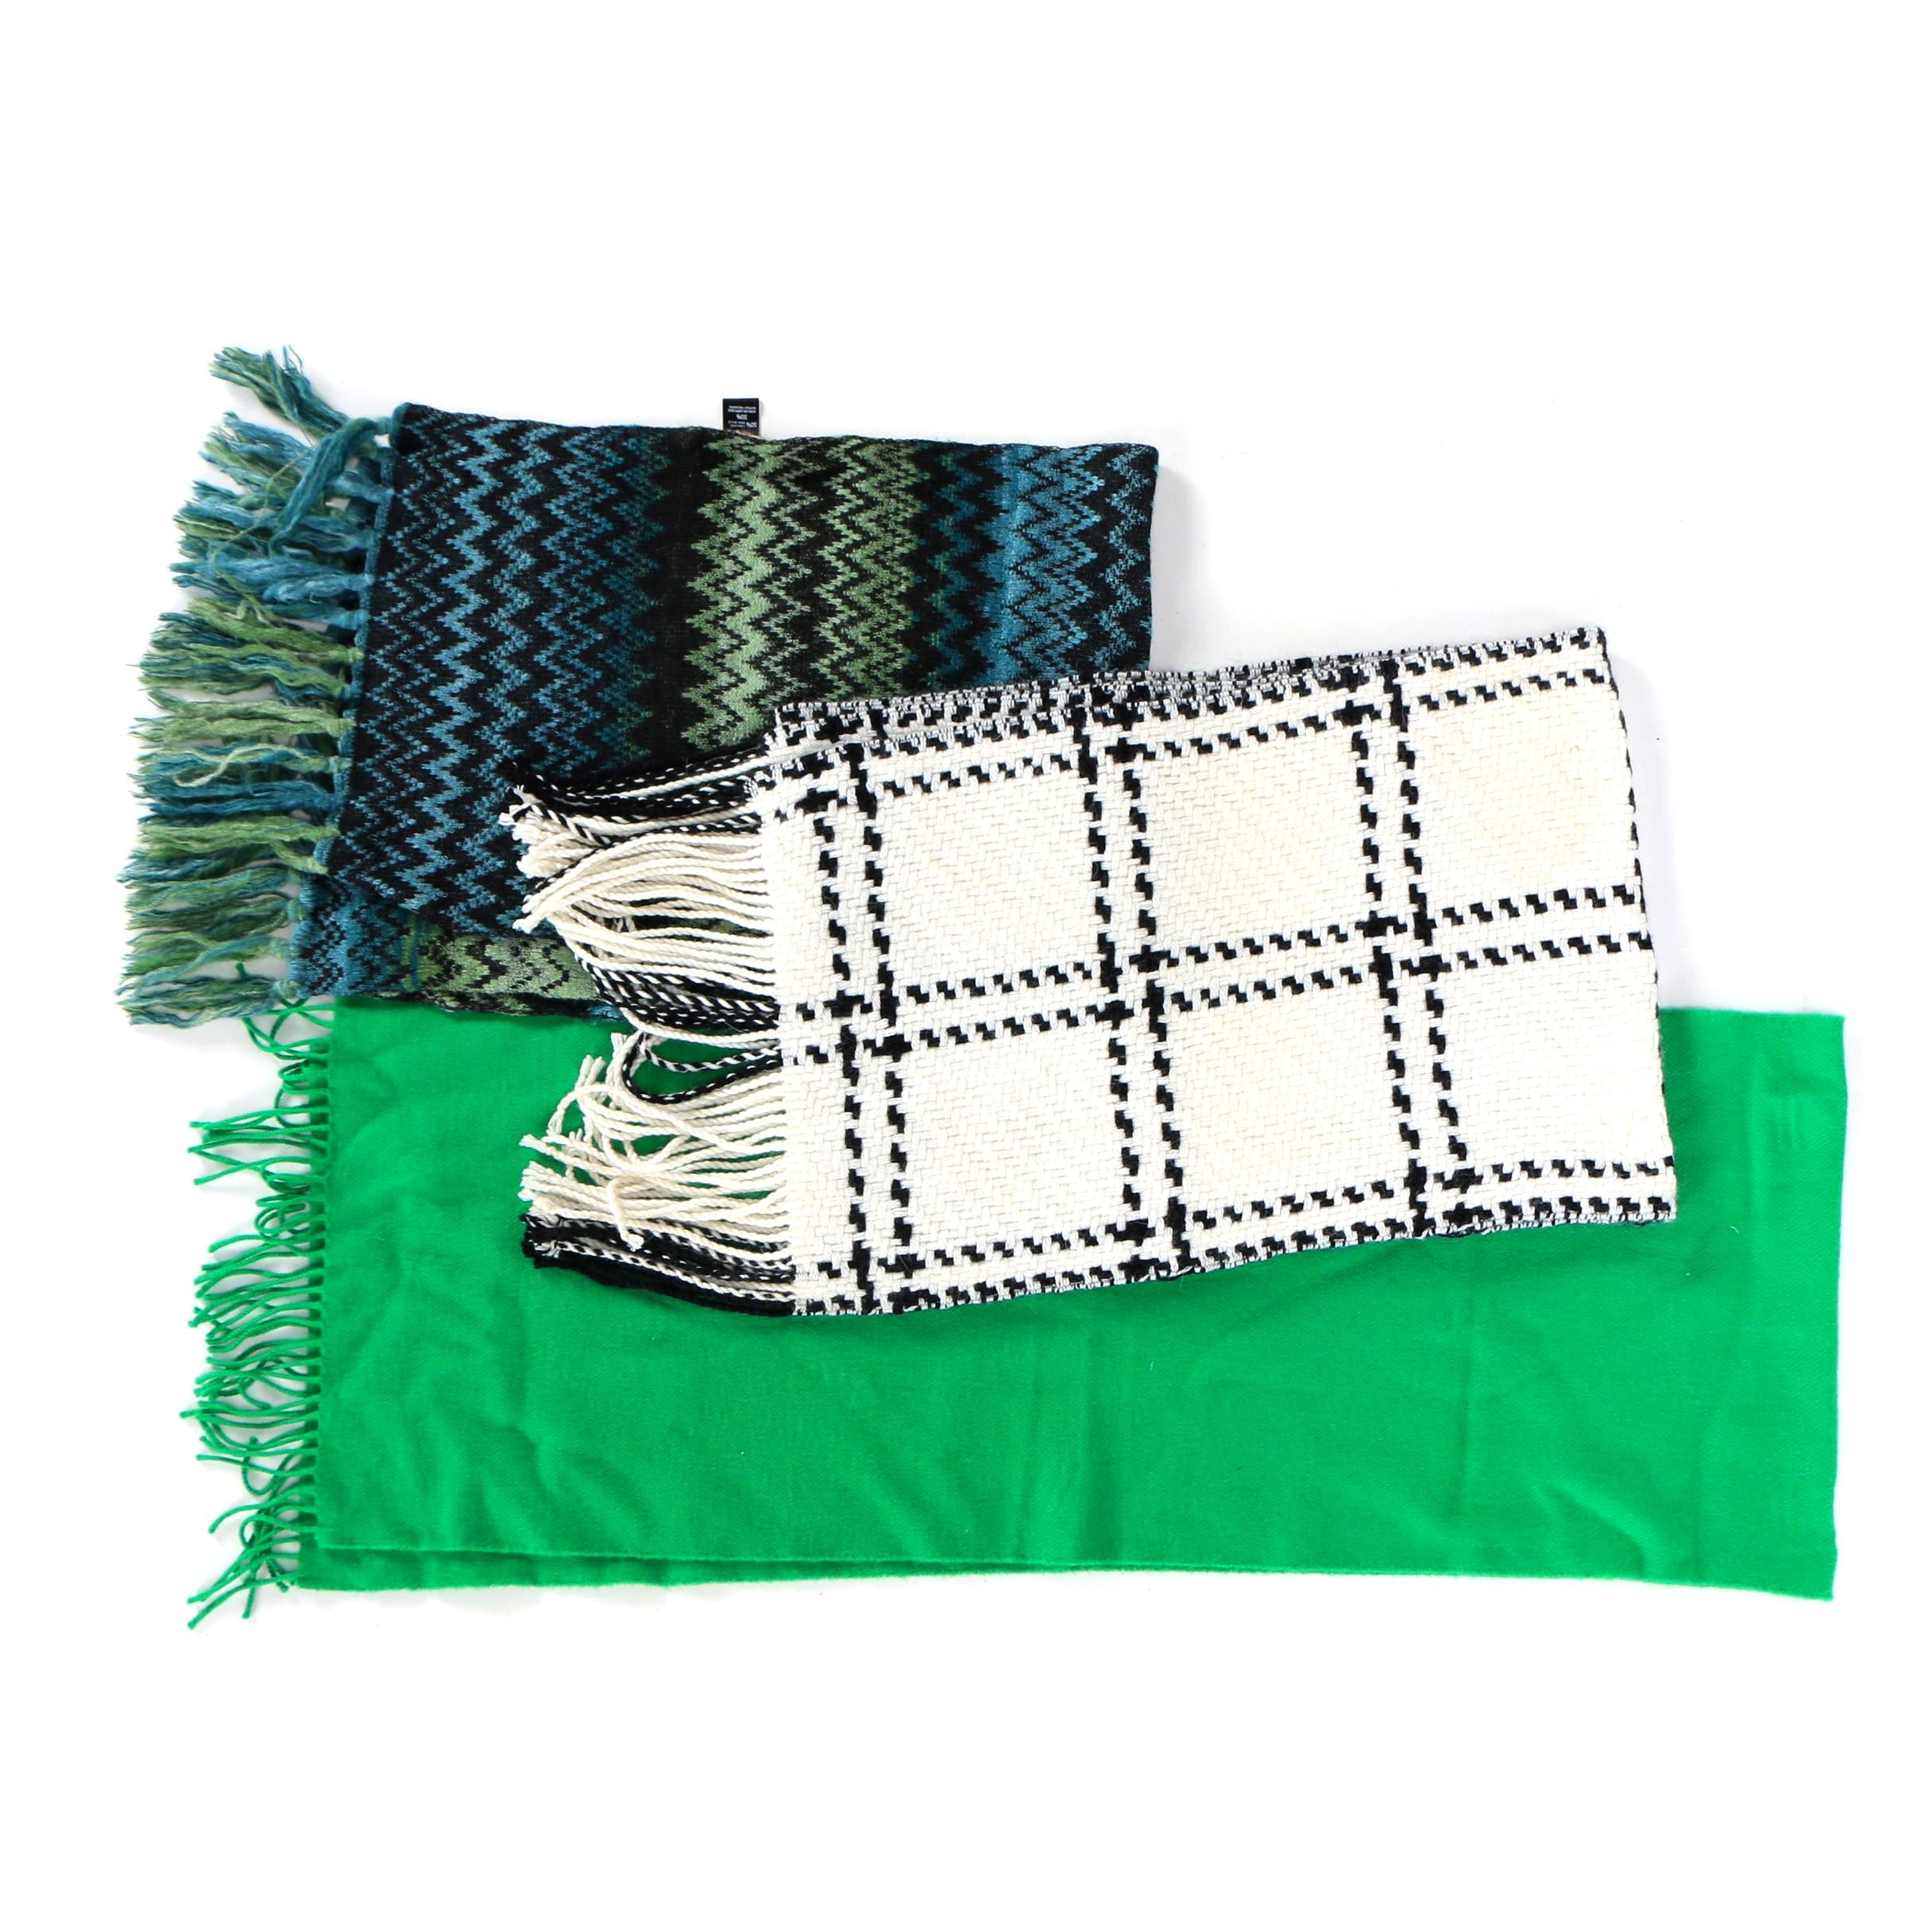 Wool and Wool Blend Scarves including Banana Republic, Missoni and John Hanley